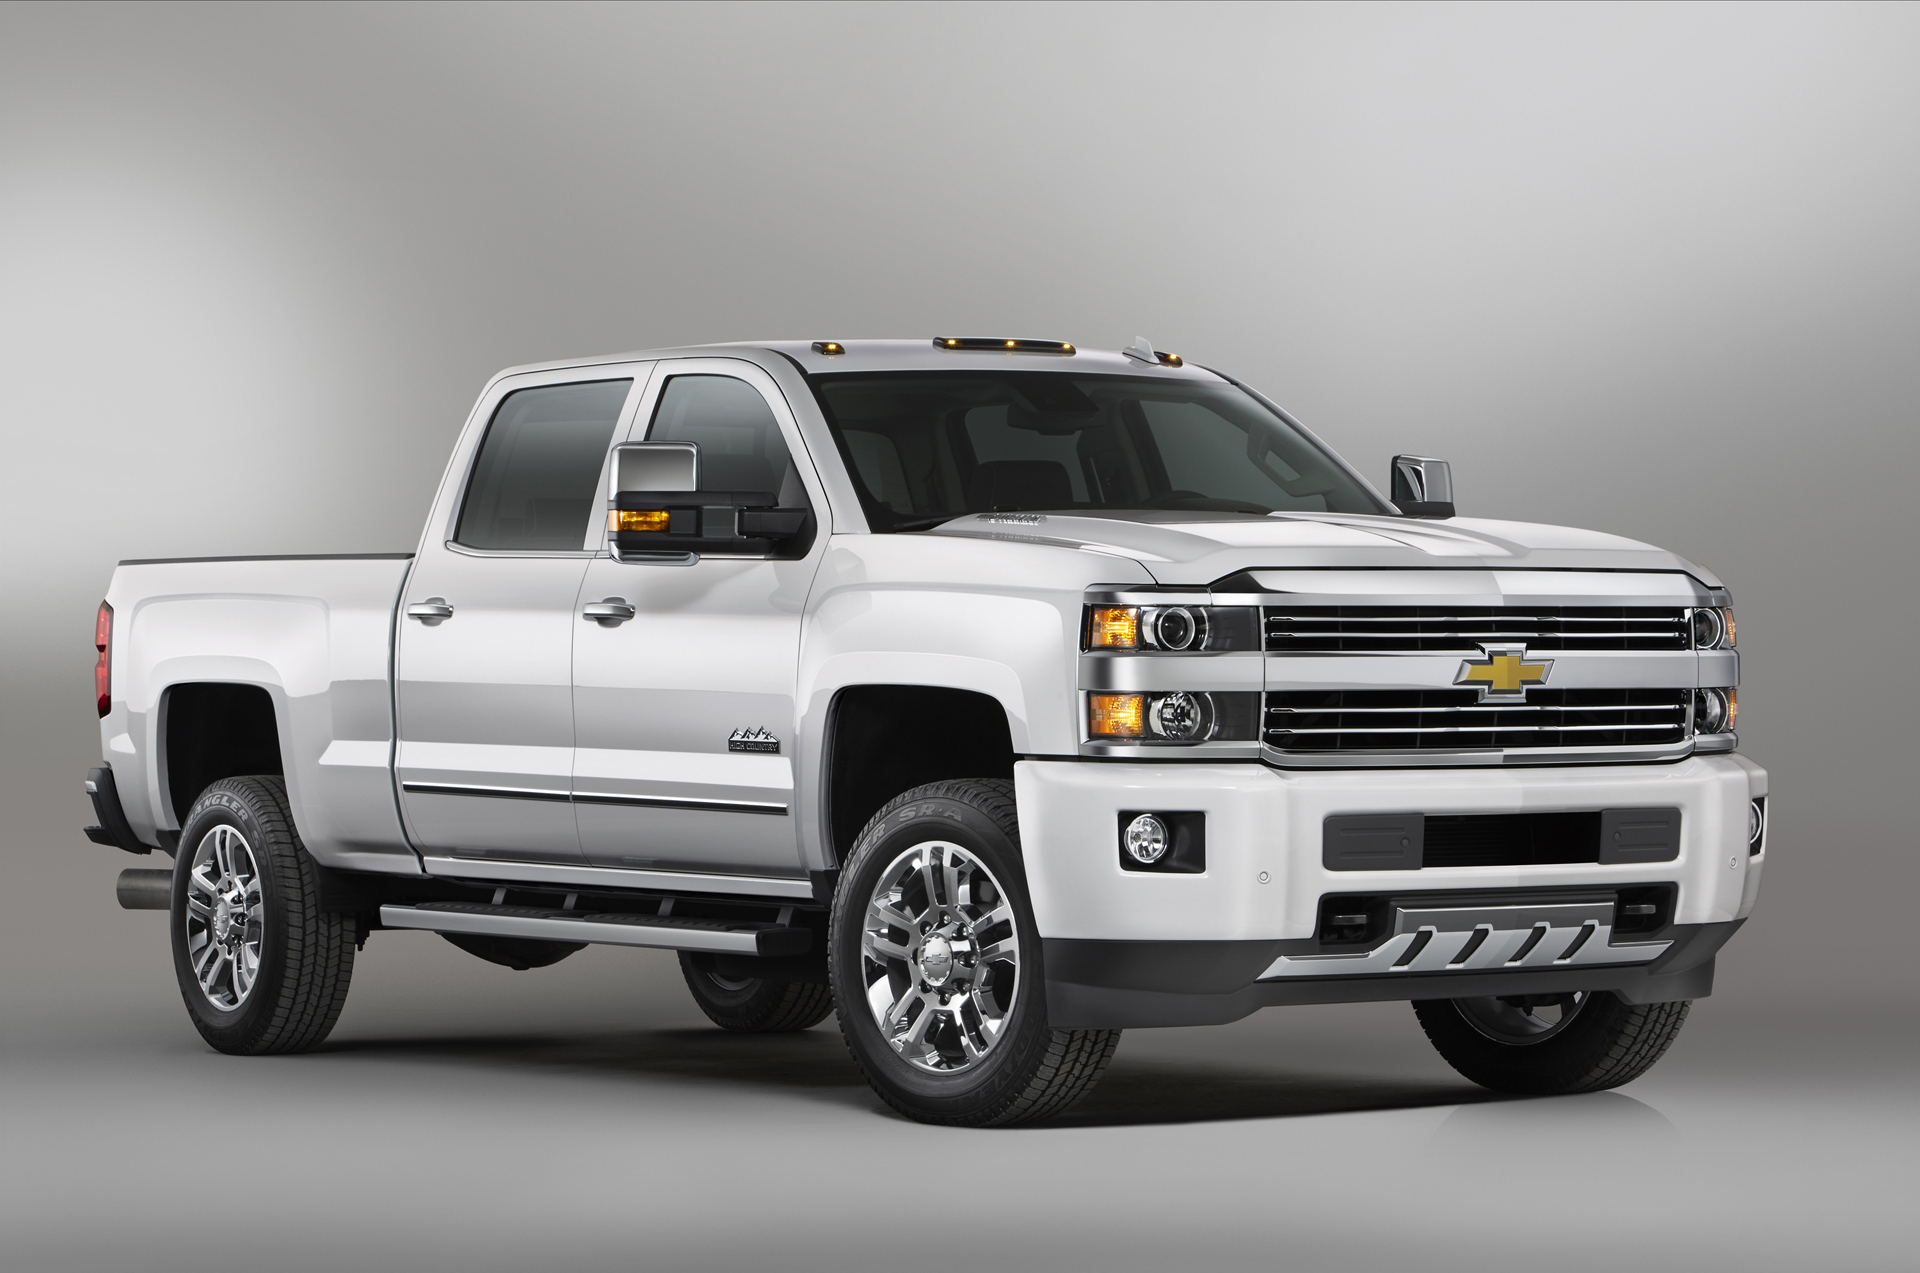 2017 Chevrolet Silverado Hd Saddles Up For High Country